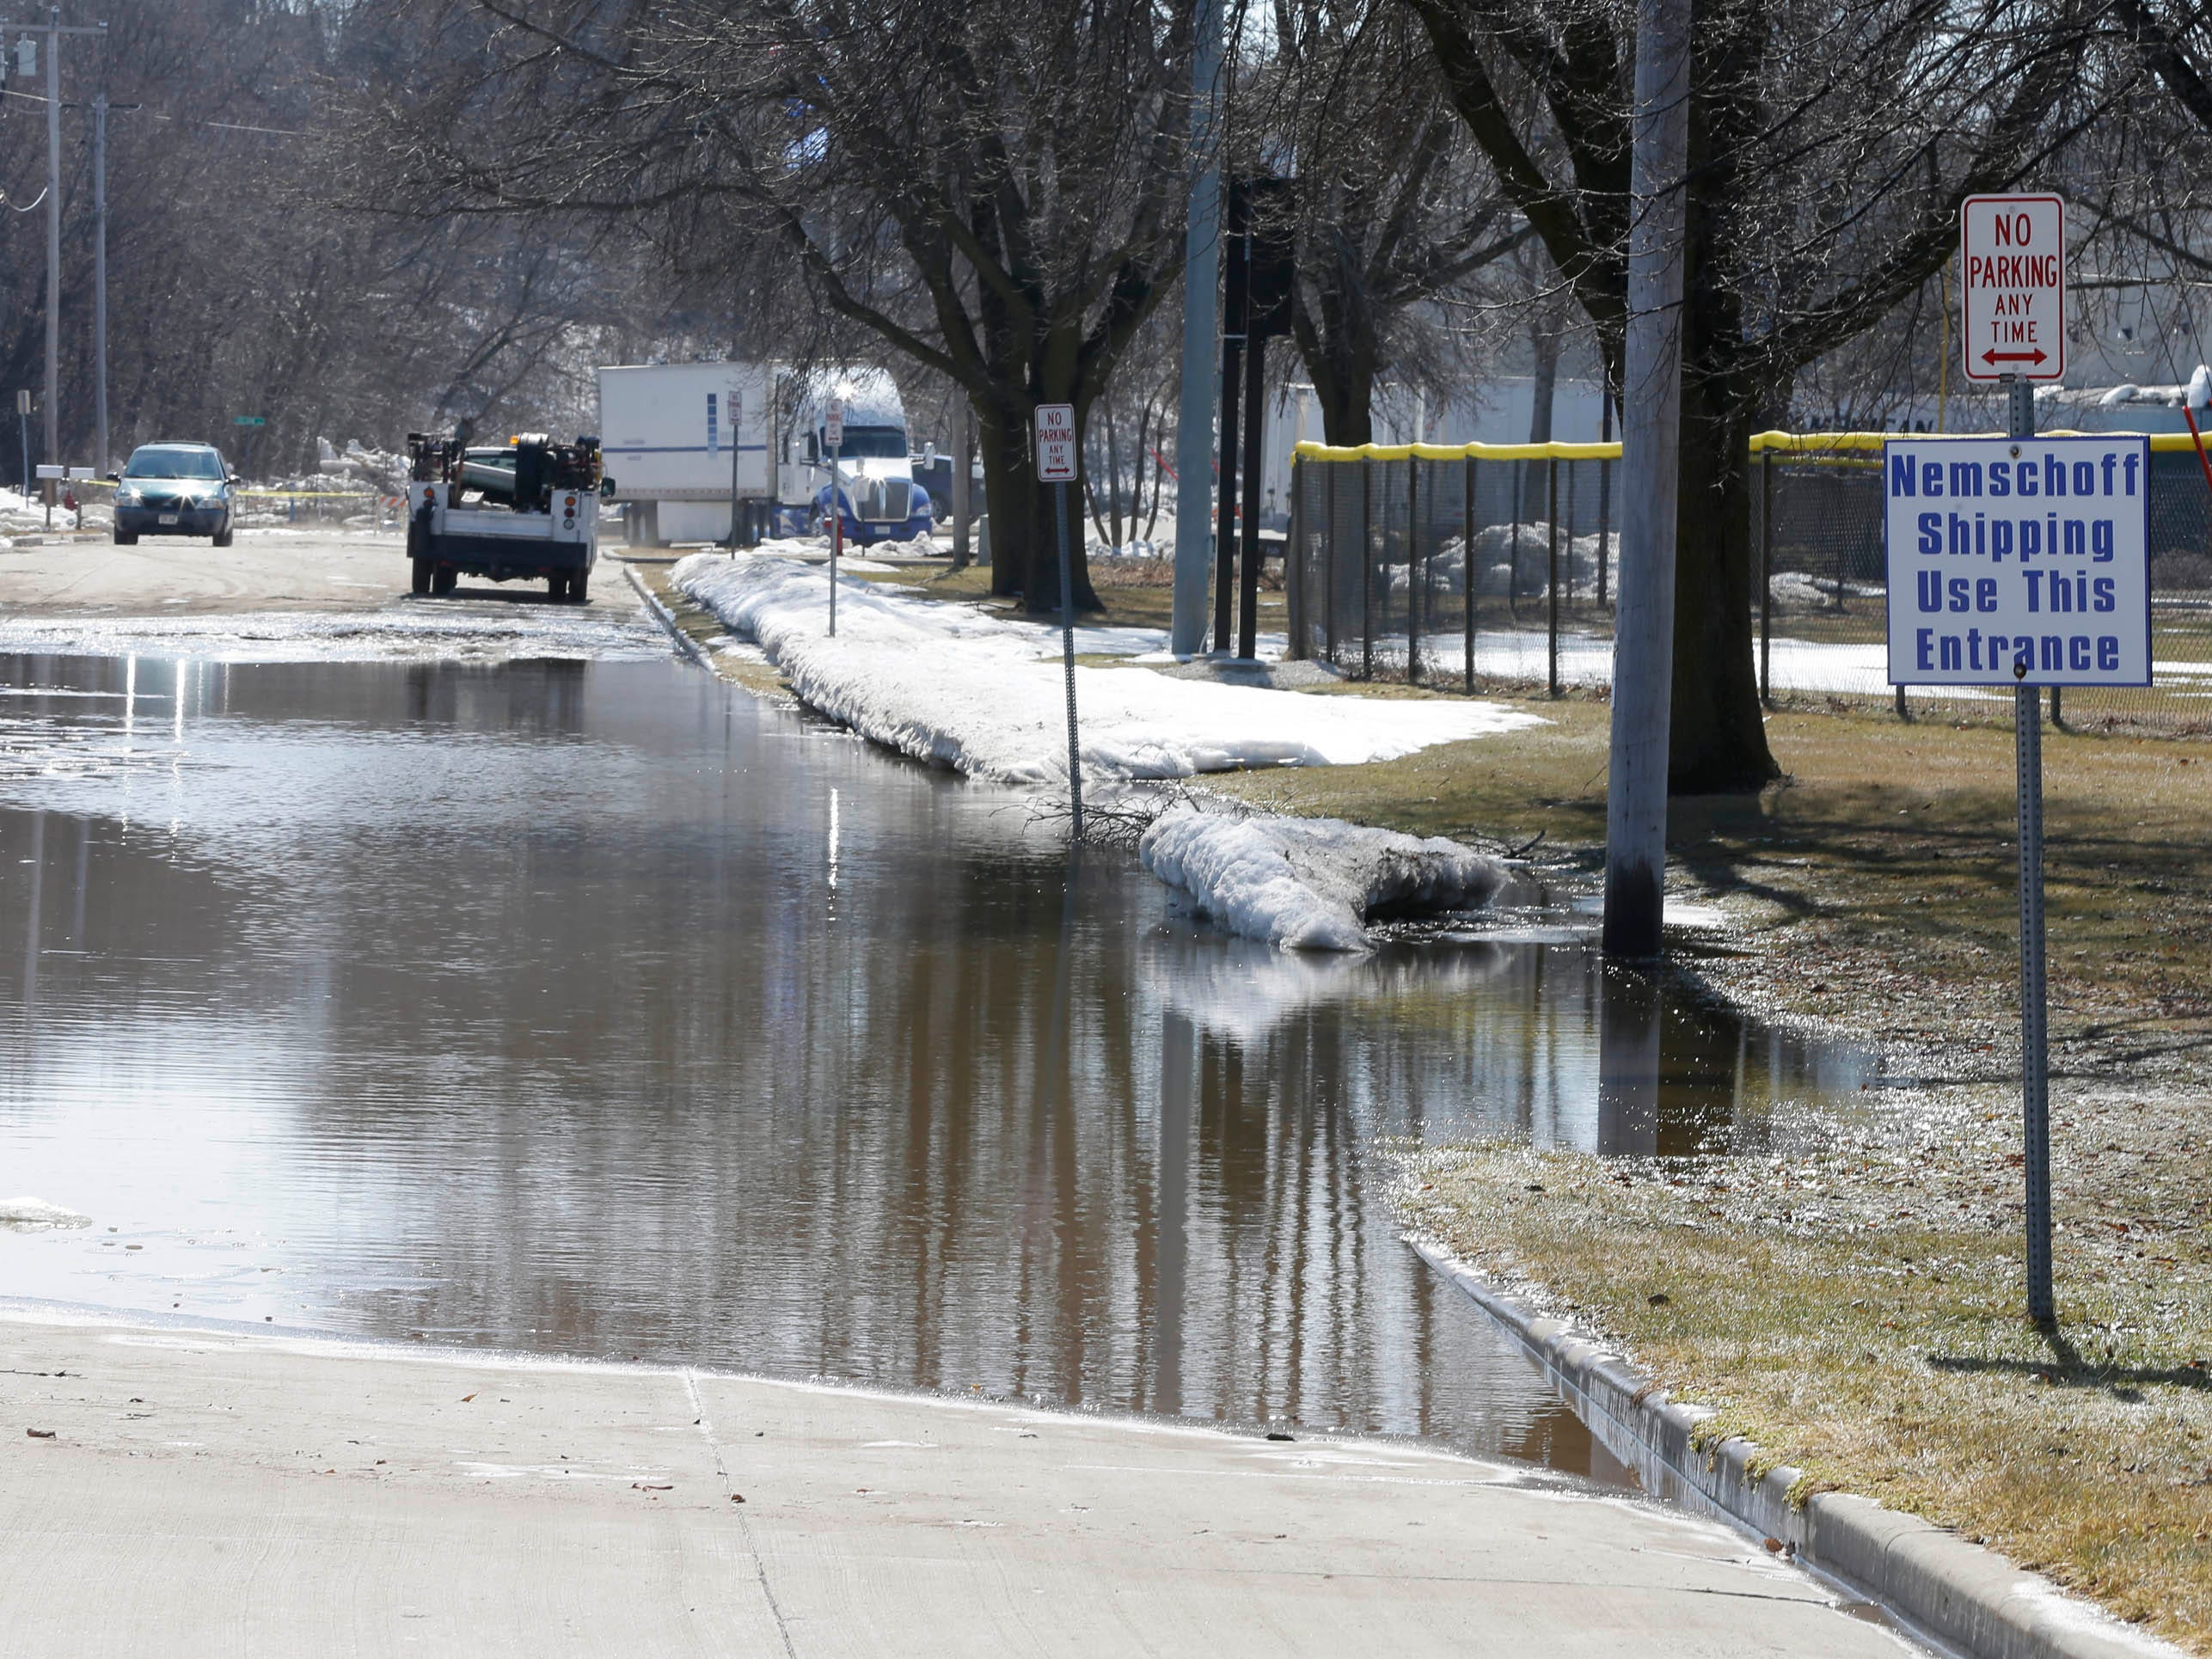 North 22nd Street is flooded south of New Jersey Avenue, Tuesday, March 19, 2019, in Sheboygan, Wis. The street leads to Nemschoff which has had to have employees park at an alternate location.